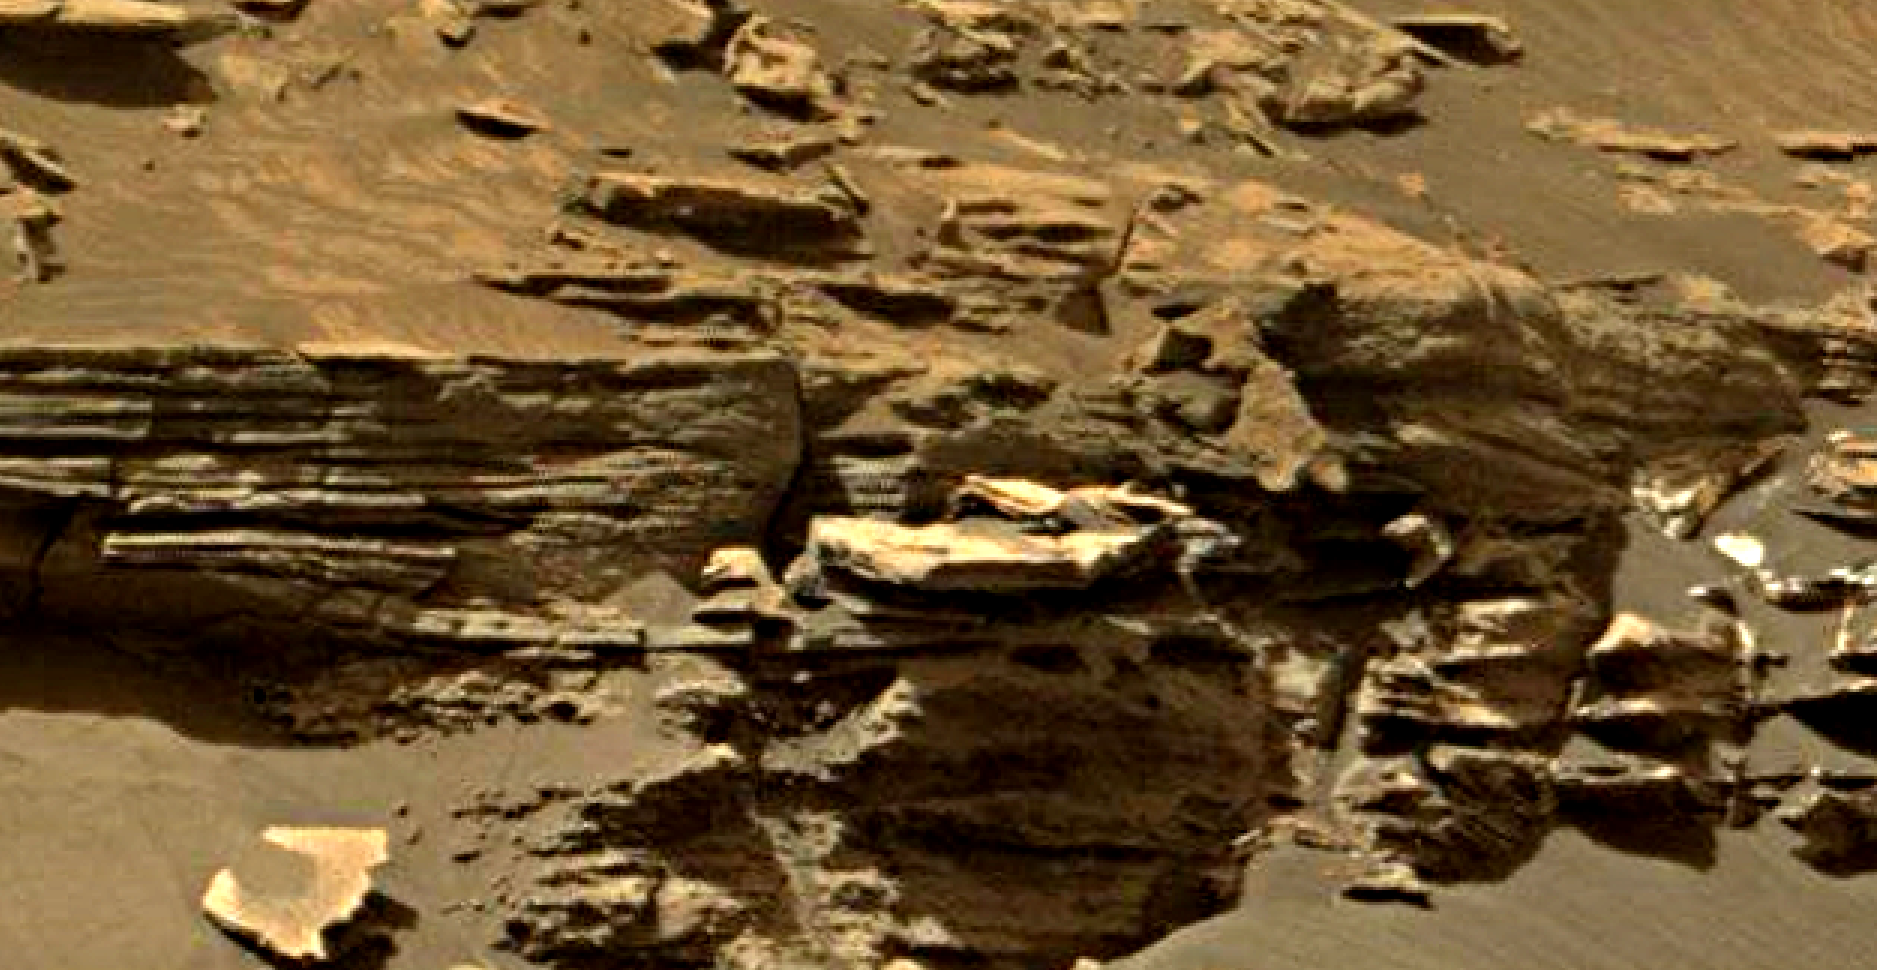 mars-sol-1454-anomaly-artifacts-5-was-life-on-mars